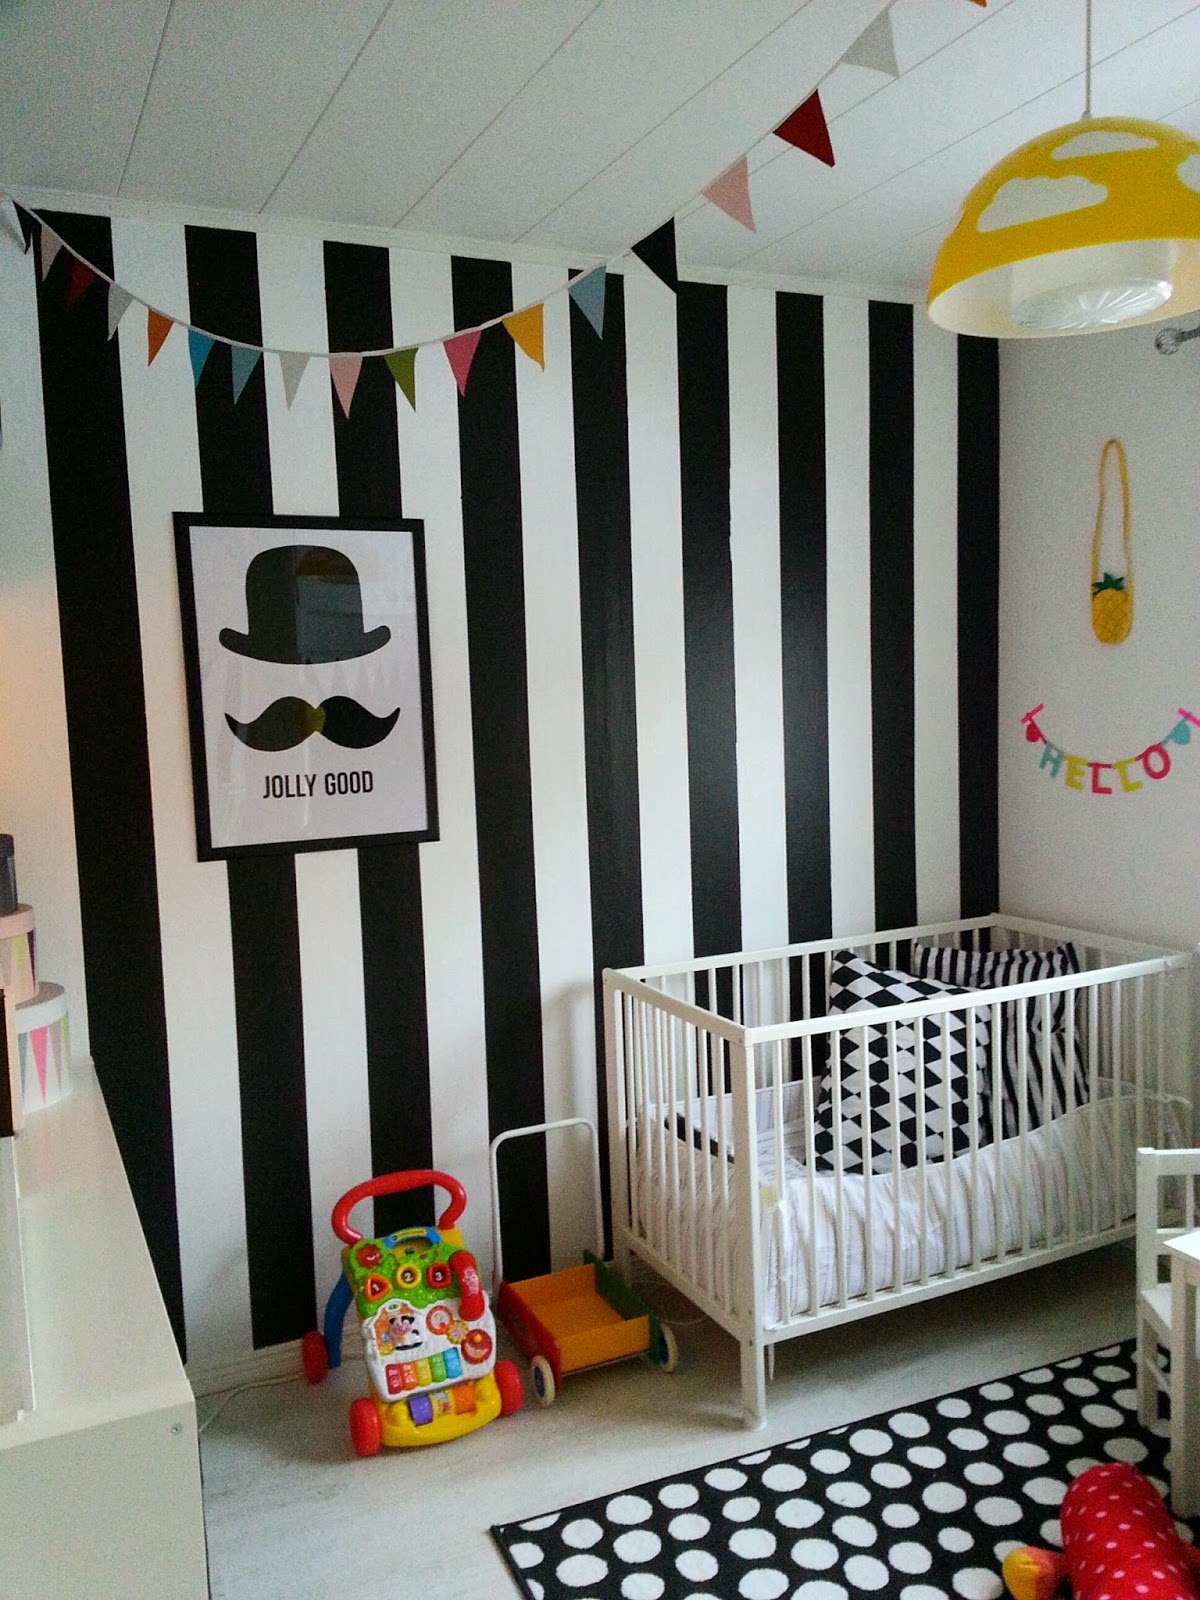 Black and white striped wall defines the whole nursery